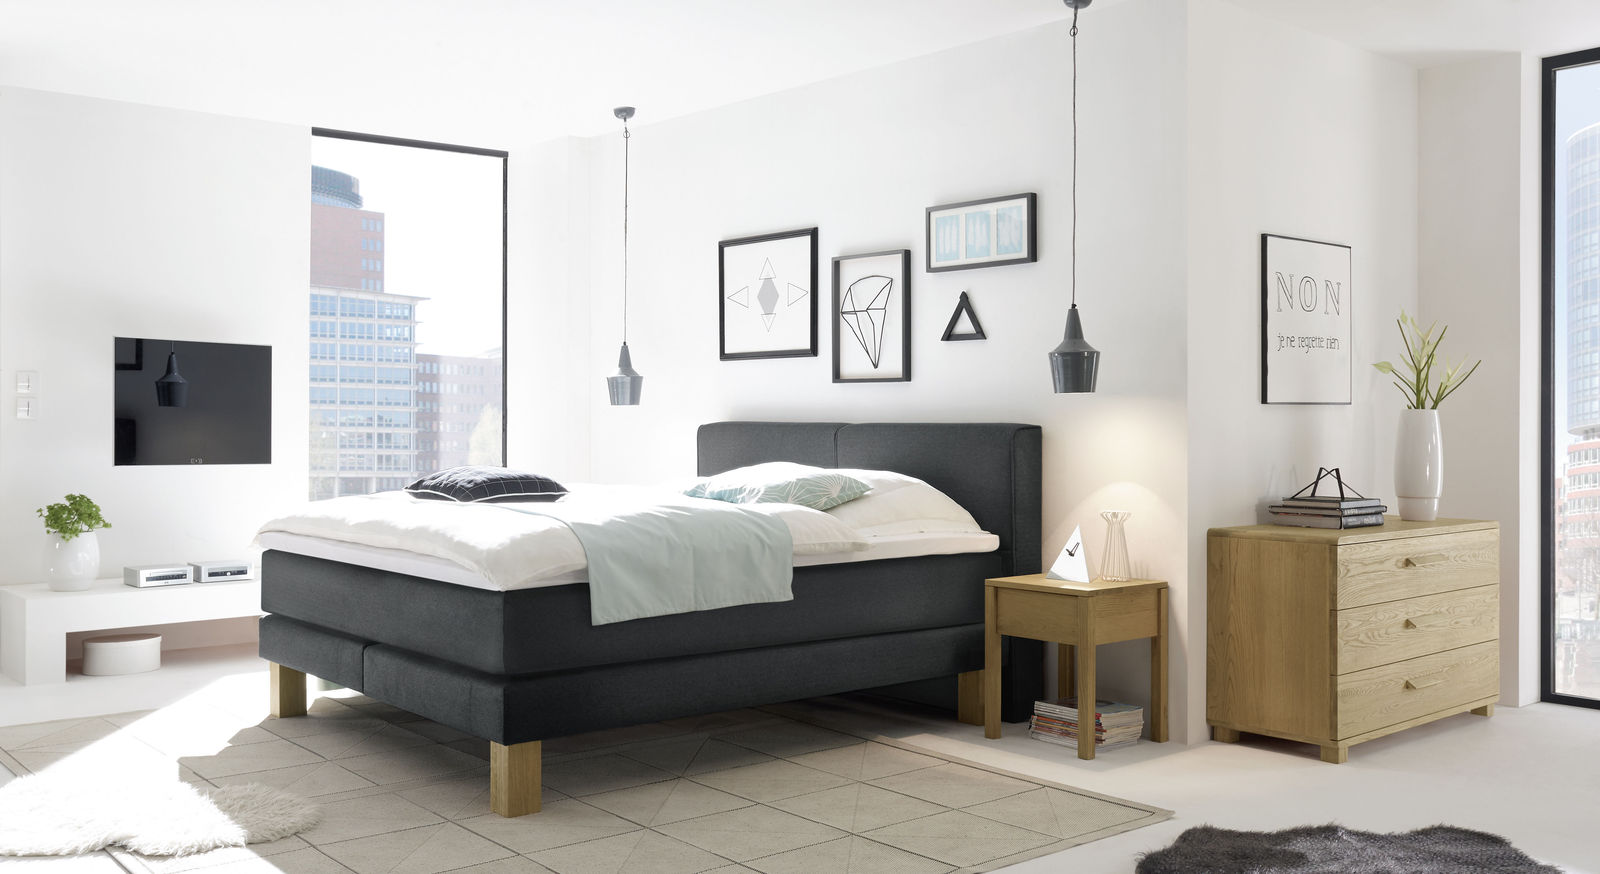 boxspringbett f r dicke menschen individuell anpassbar coro. Black Bedroom Furniture Sets. Home Design Ideas